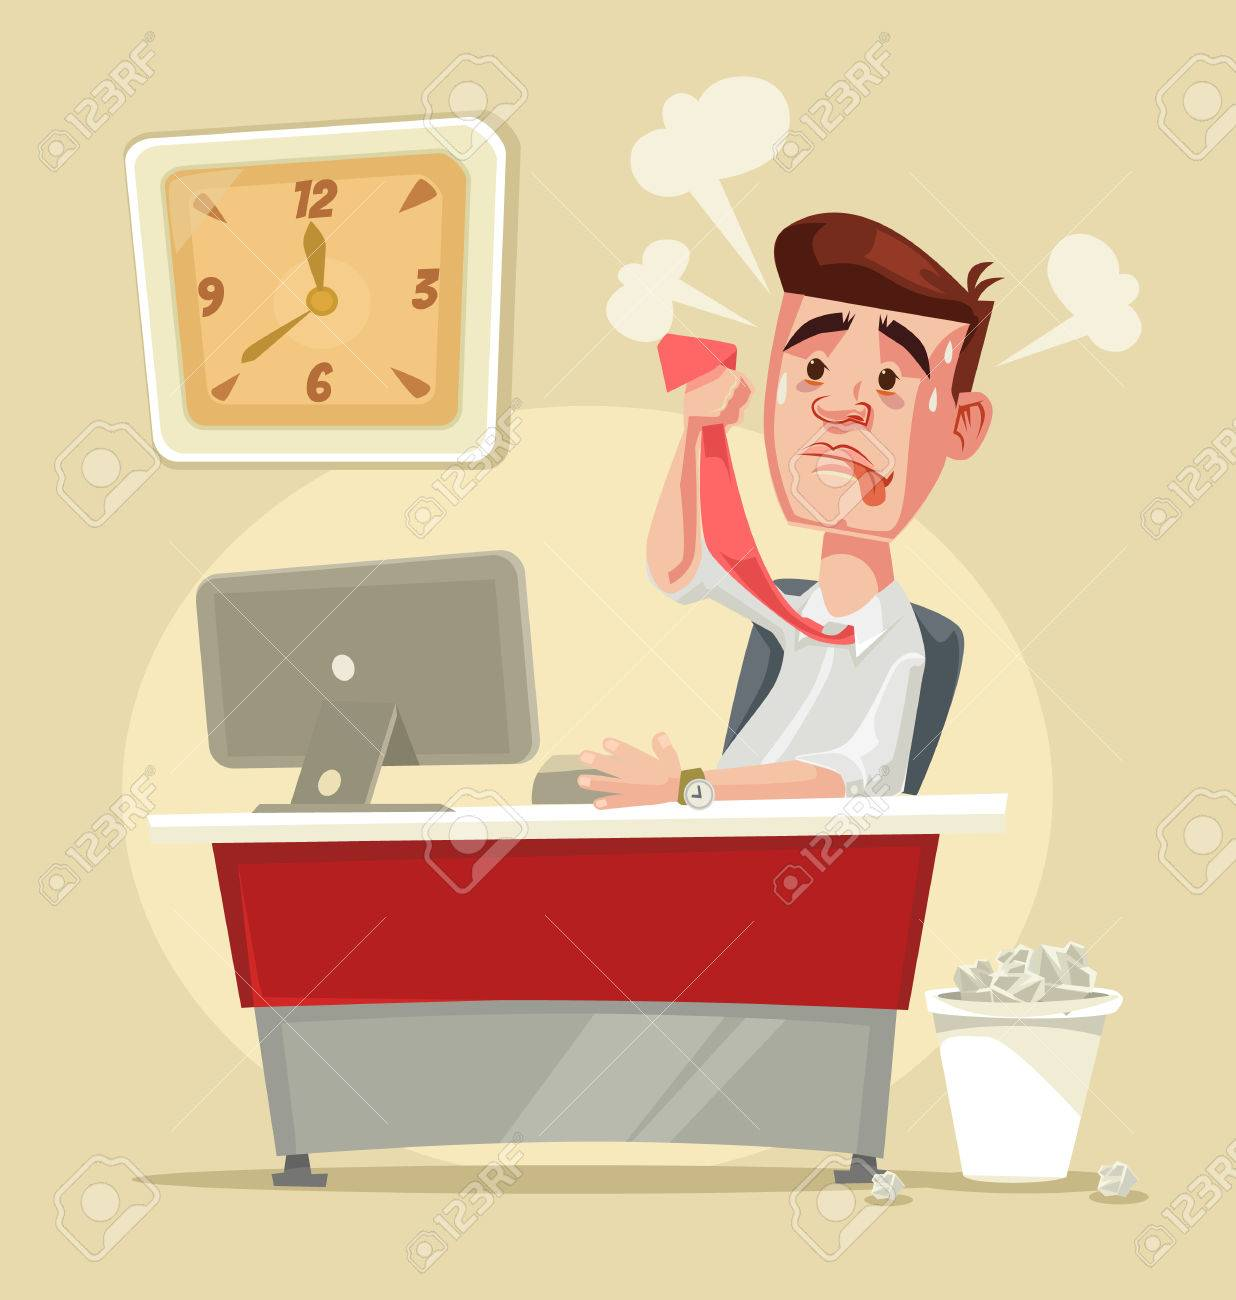 Busy stressful office worker character. Vector flat cartoon illustration - 66662358